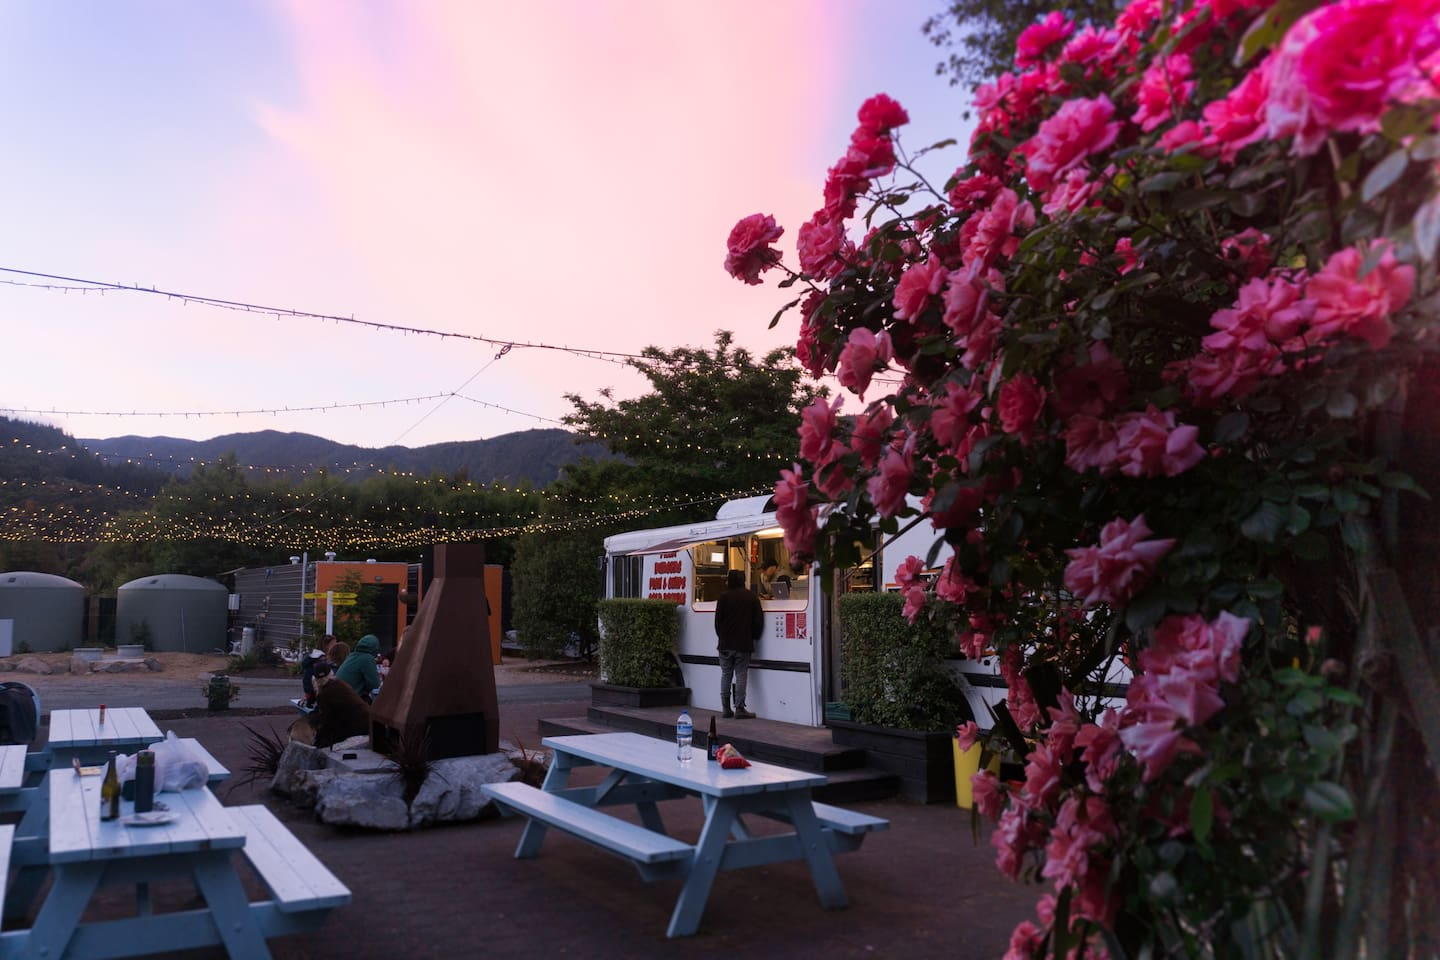 Our courtyard/reception/food bus at sunset!